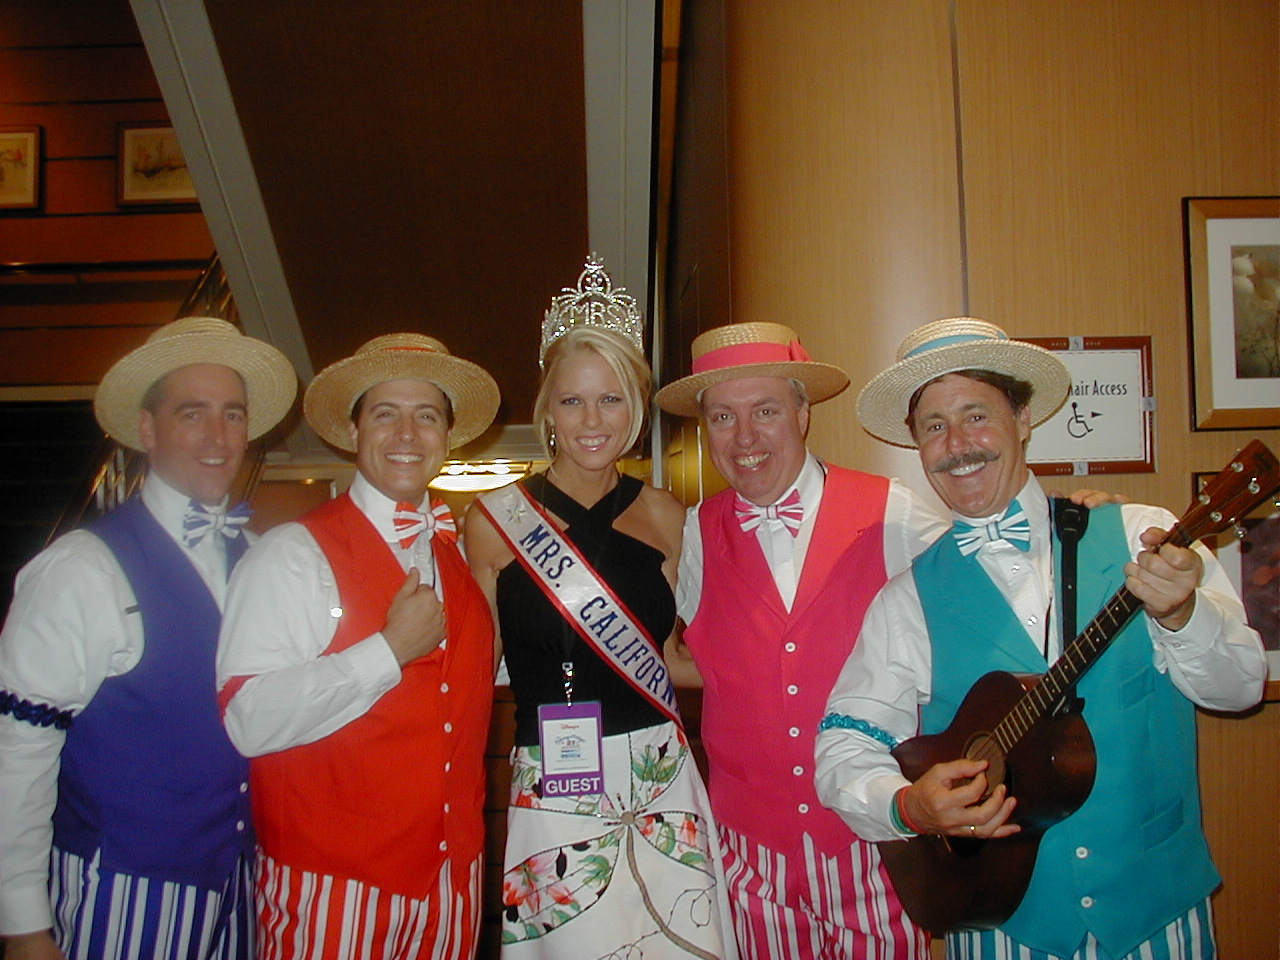 On the Disney cruise with Miss California